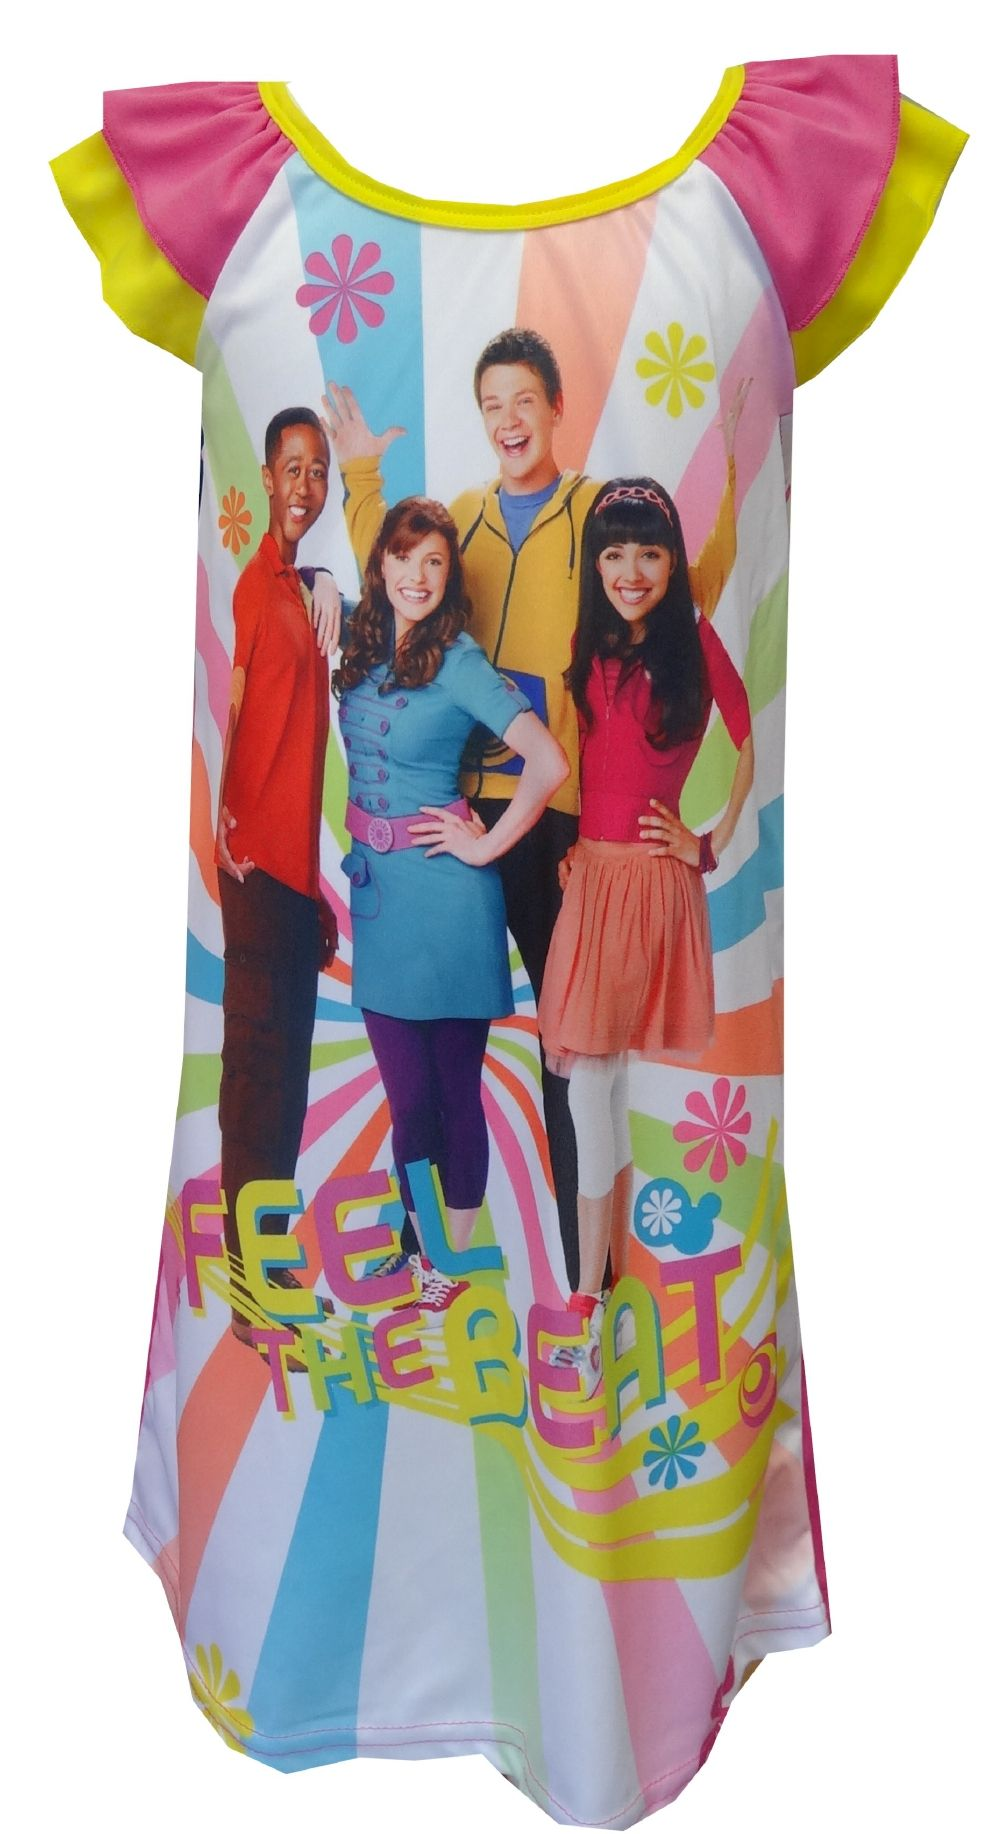 Nickelodeon Fresh Beat Band Toddler Nightgown Your little one will ...